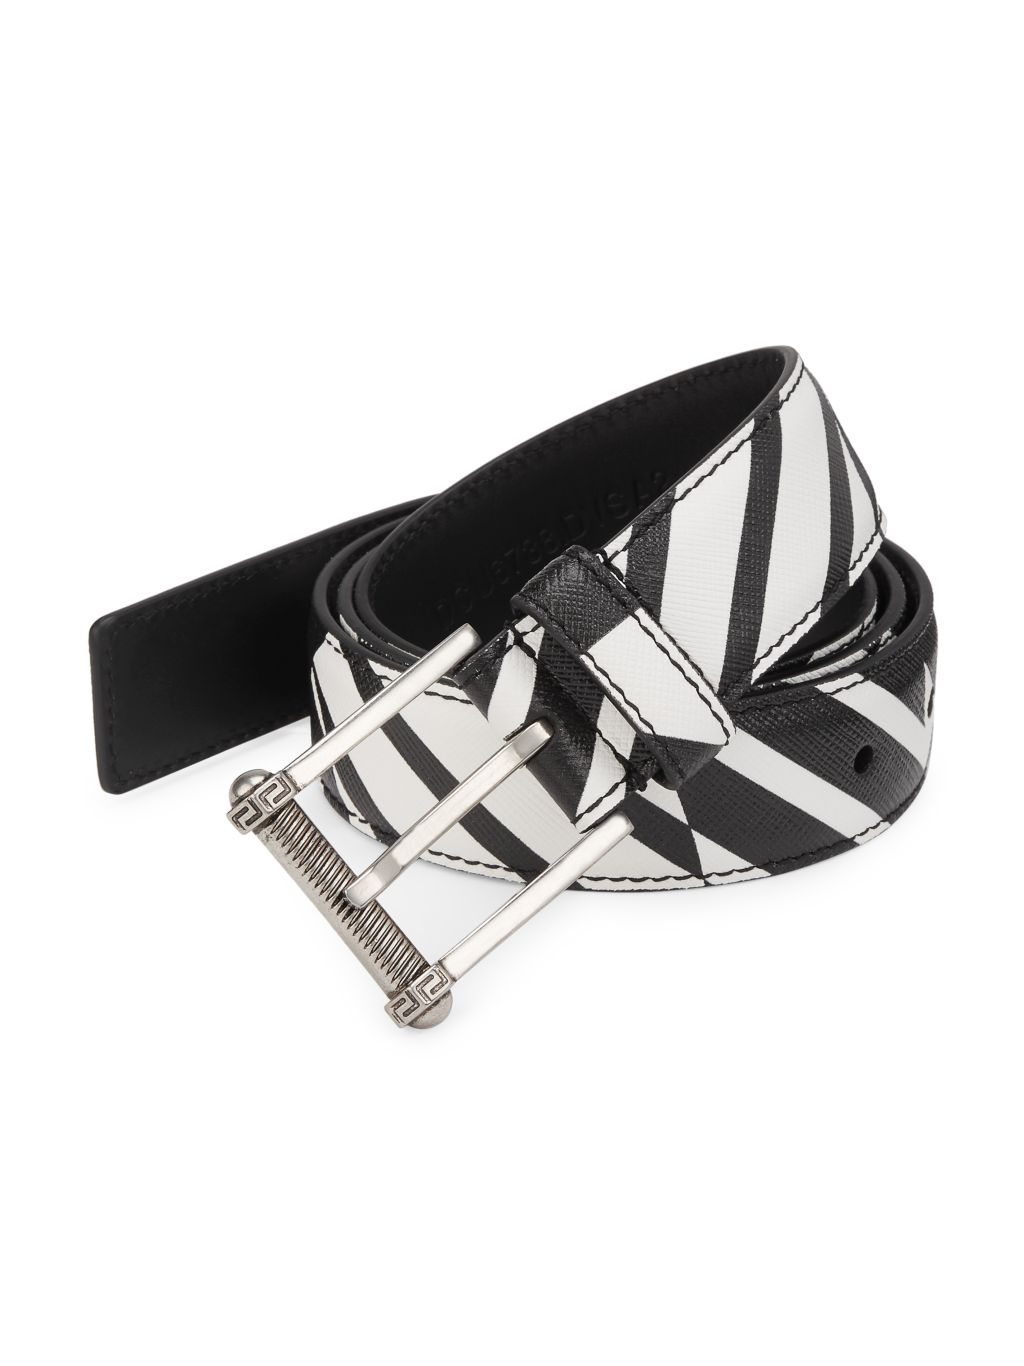 Versace Collection Classic Saffiano Leather Belt